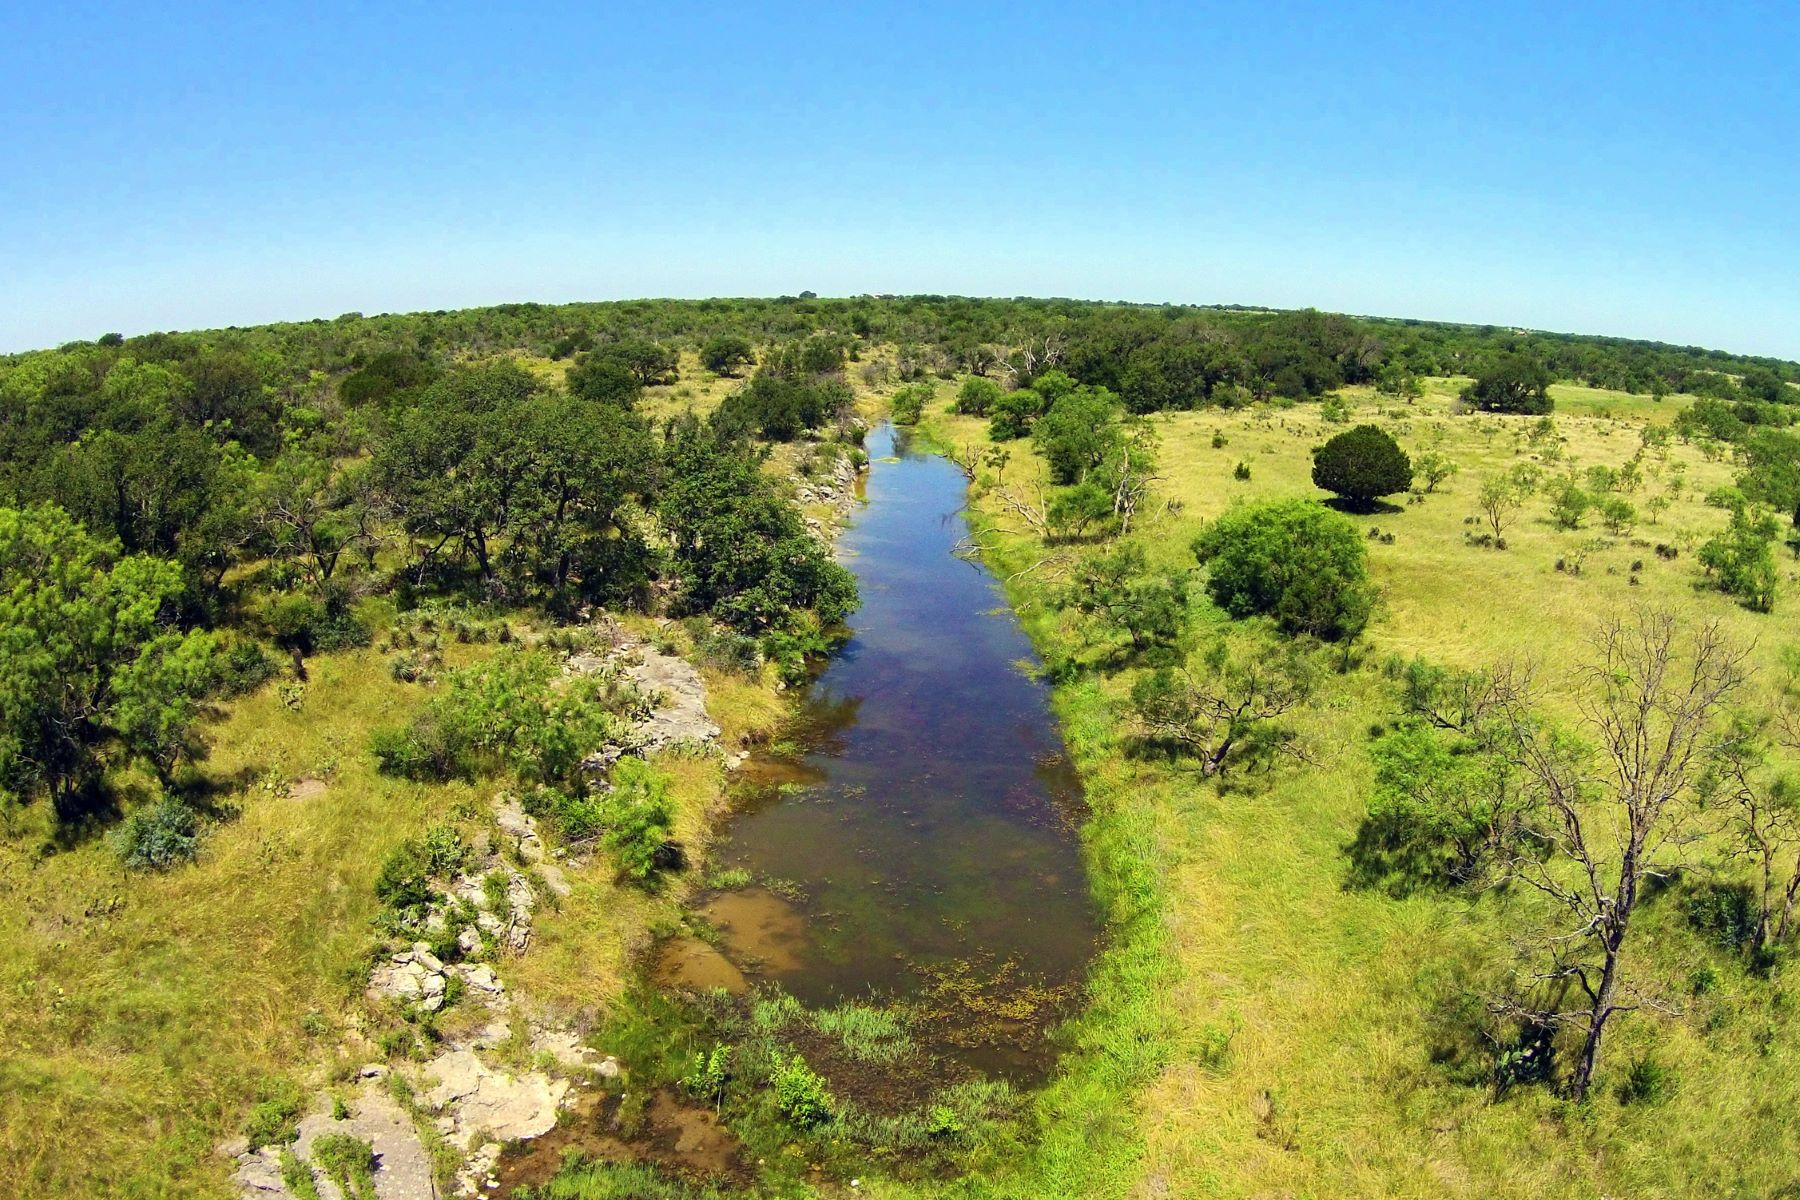 Farm / Ranch / Plantation for Sale at 461+/- Acres - Live Oak Creek Ranch 461+/- Acres / McCullough County Brady, Texas 76825 United States